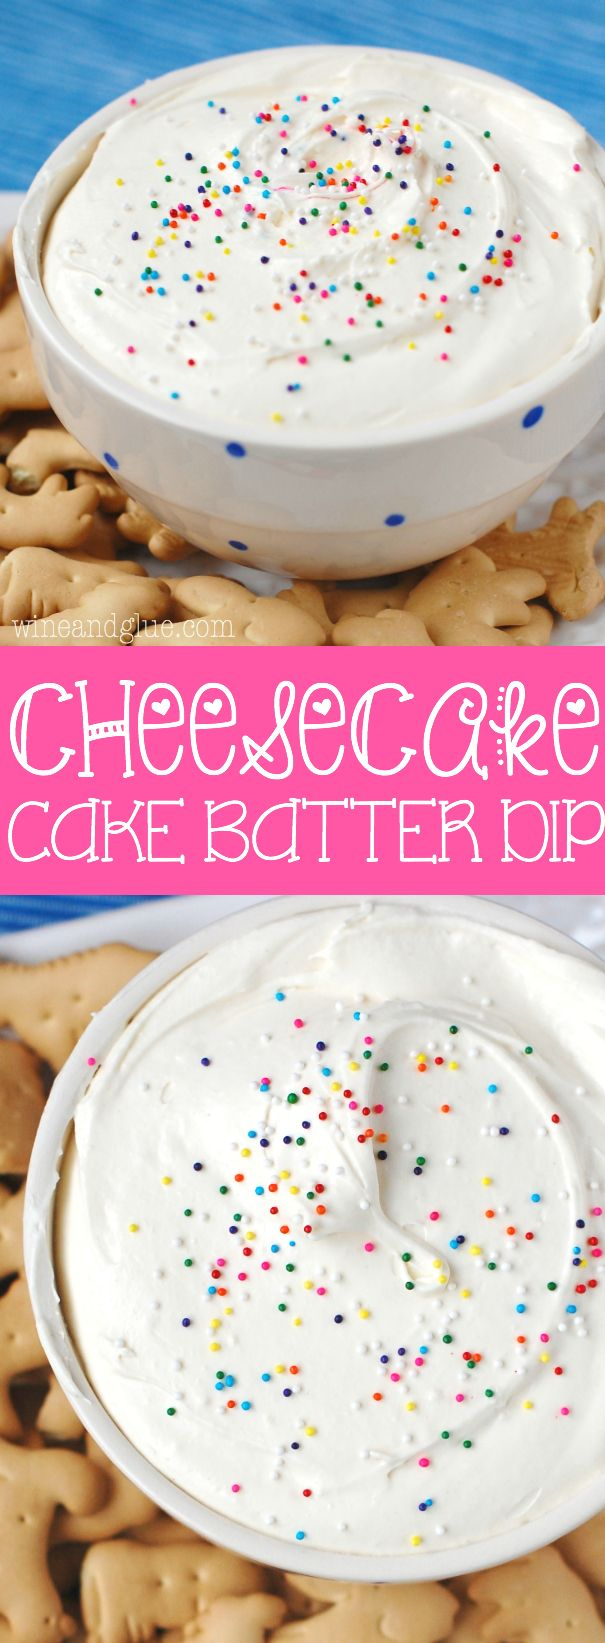 A super easy dip that combines the awesome flavors of cheesecake and cake batter!